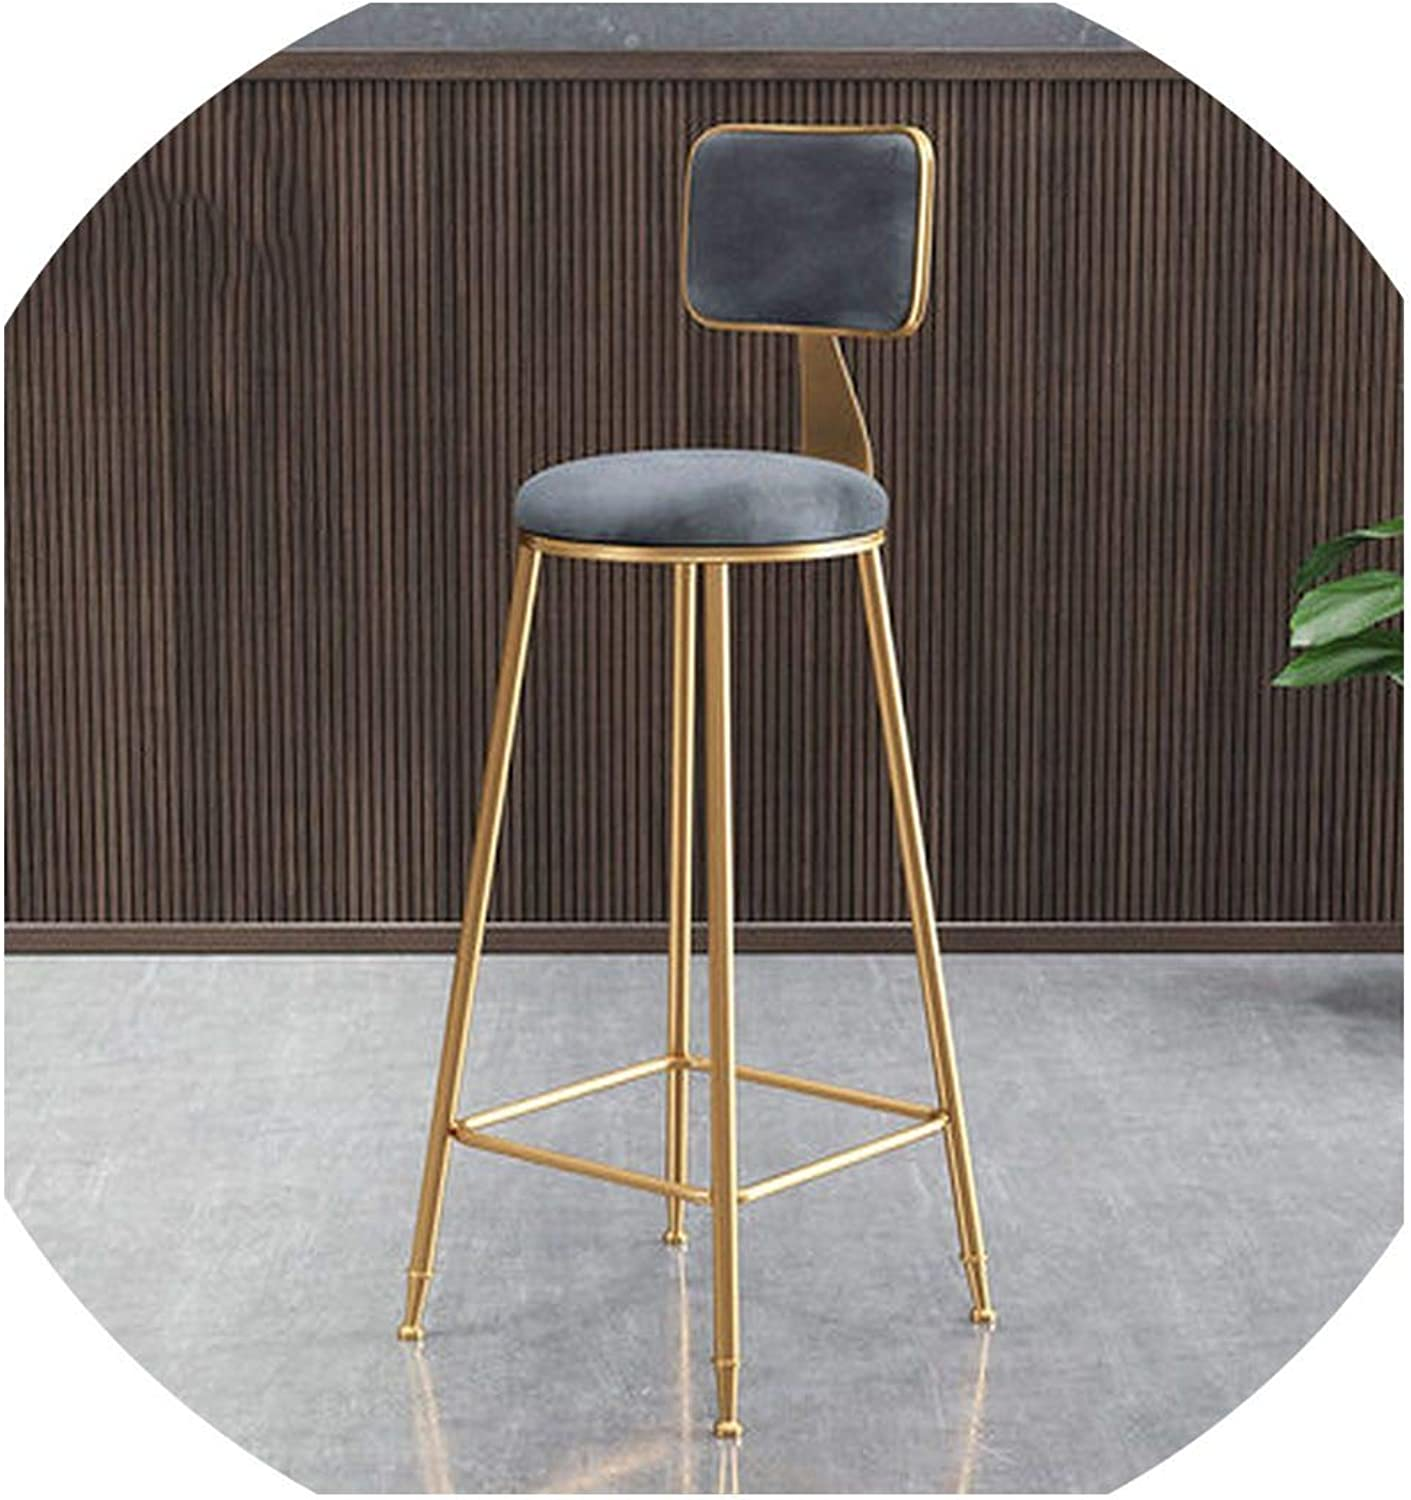 Ge-Store Minimalist golden Bar Chair Backrest High Stool Stool Front Dining Room Leisure,A1 Grey